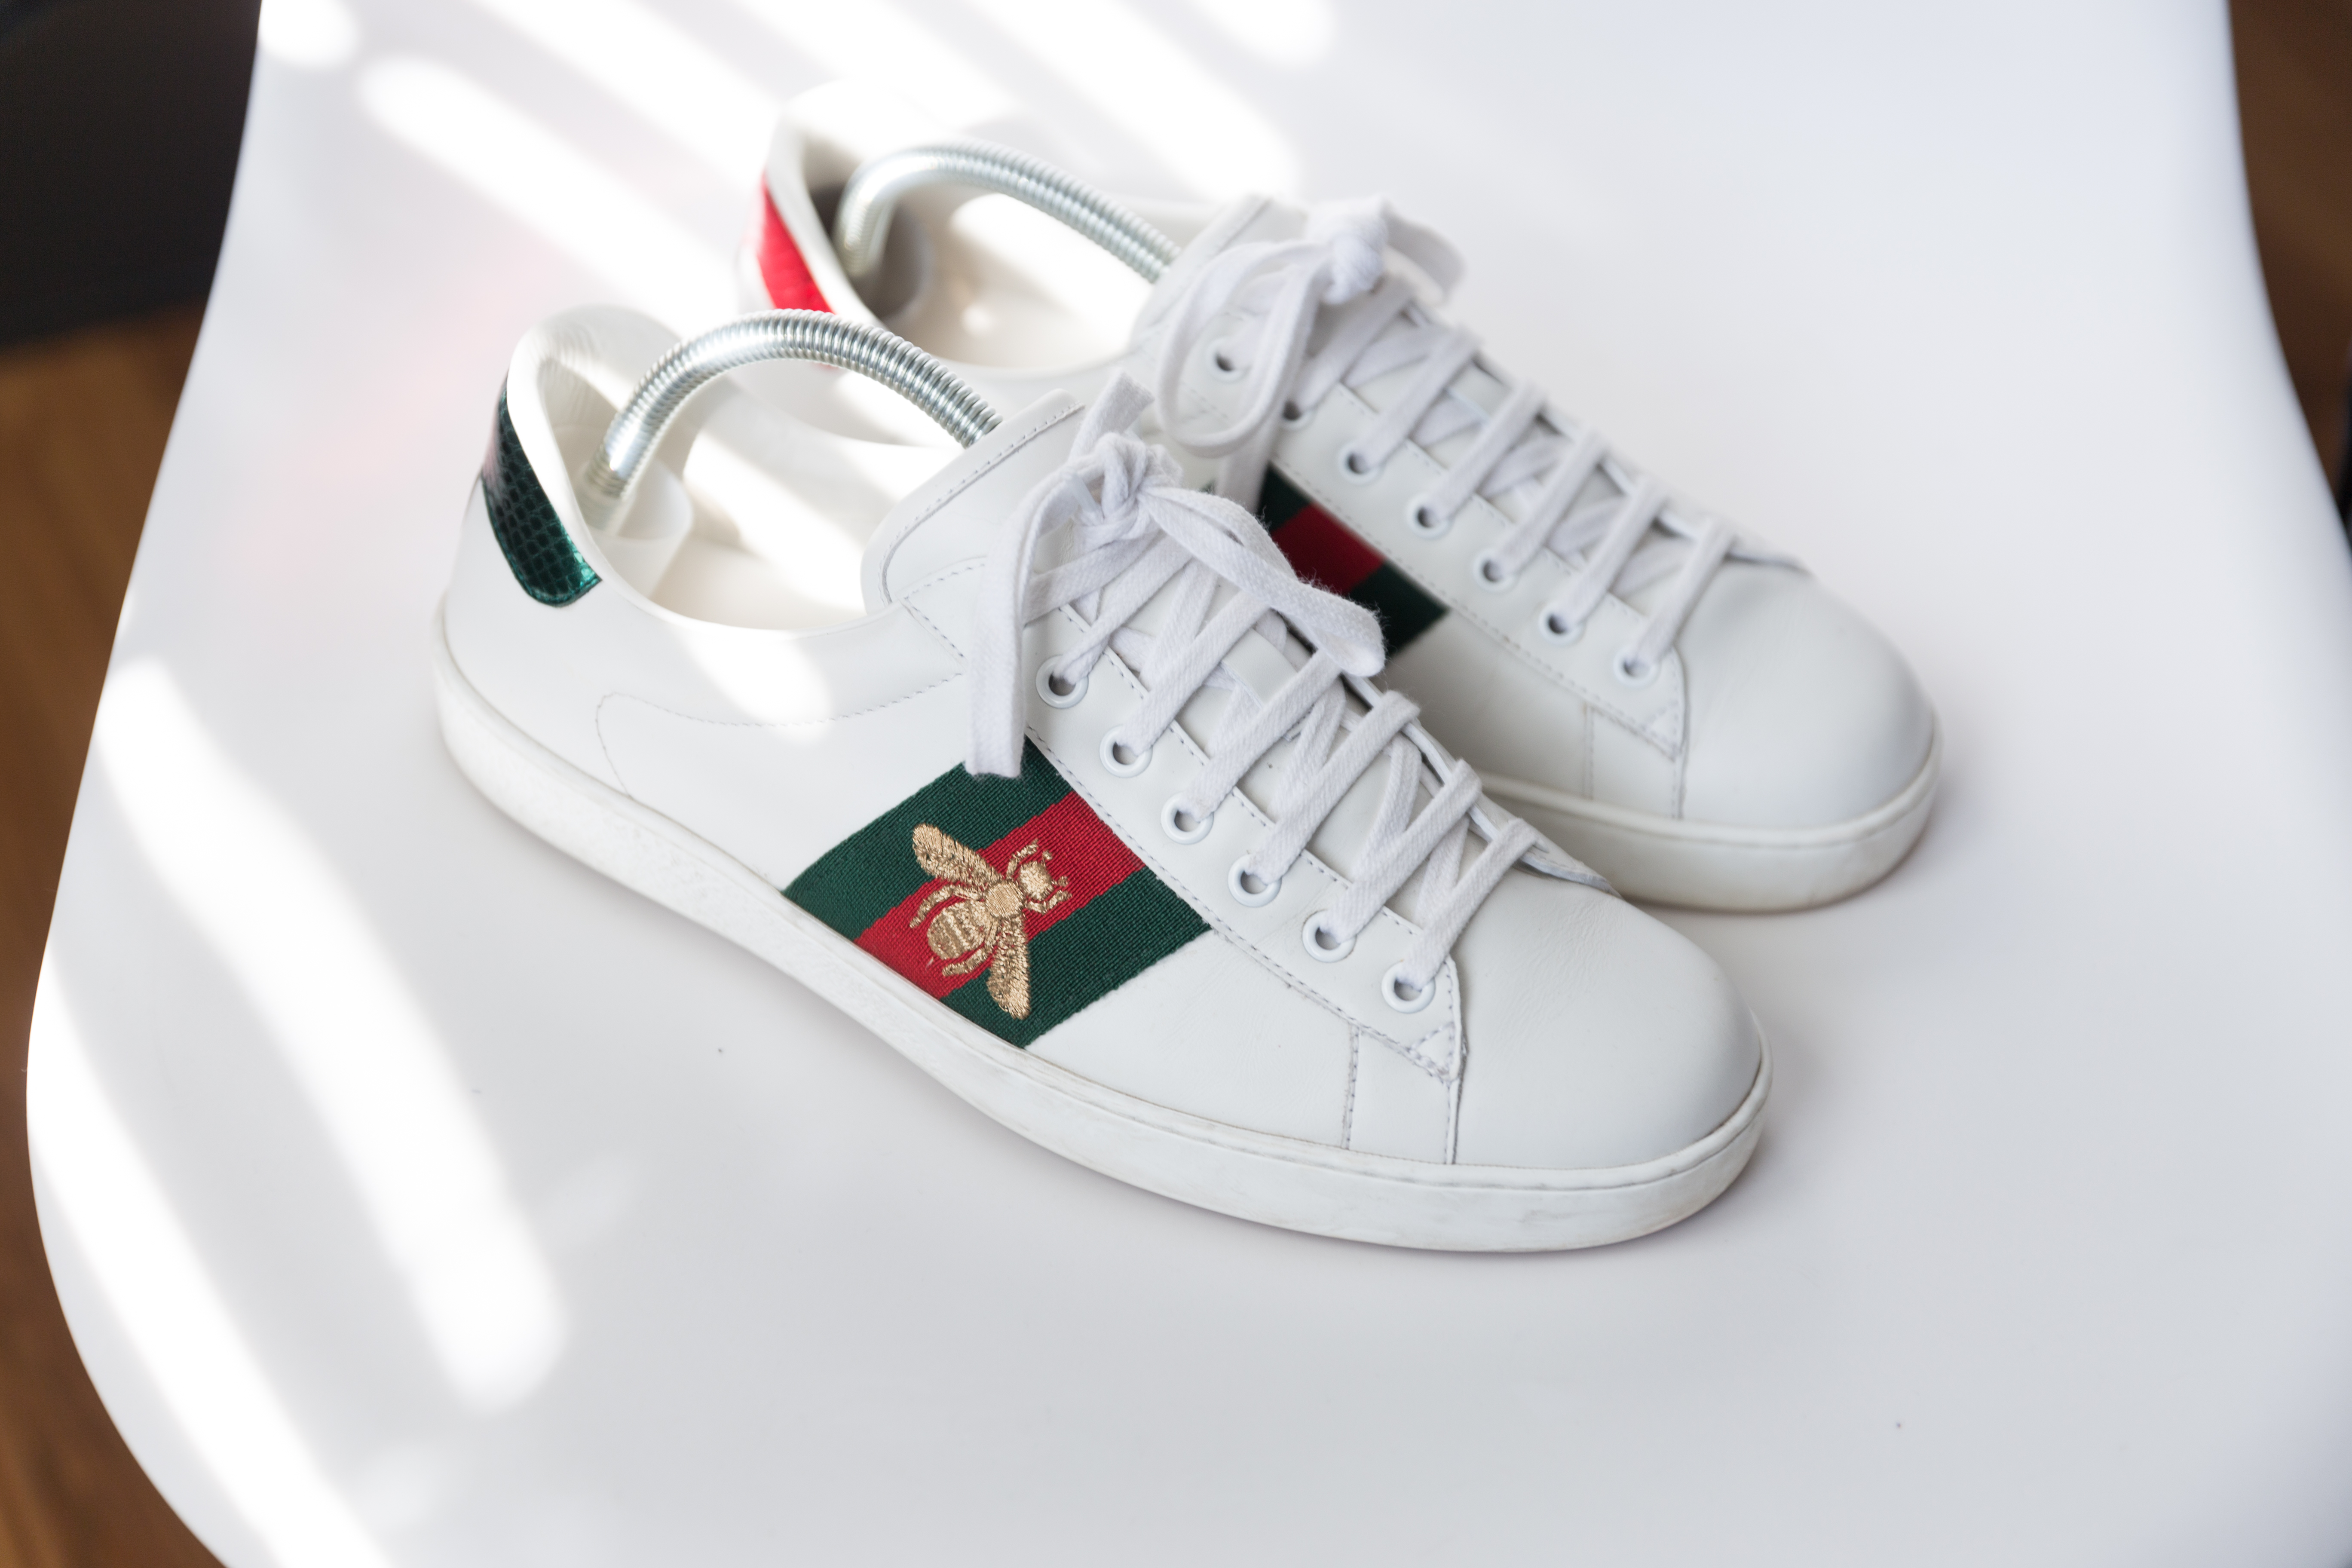 4aece65c695 Gucci Ace Watersnake-trimmed Embroidered Leather Sneakers | Grailed